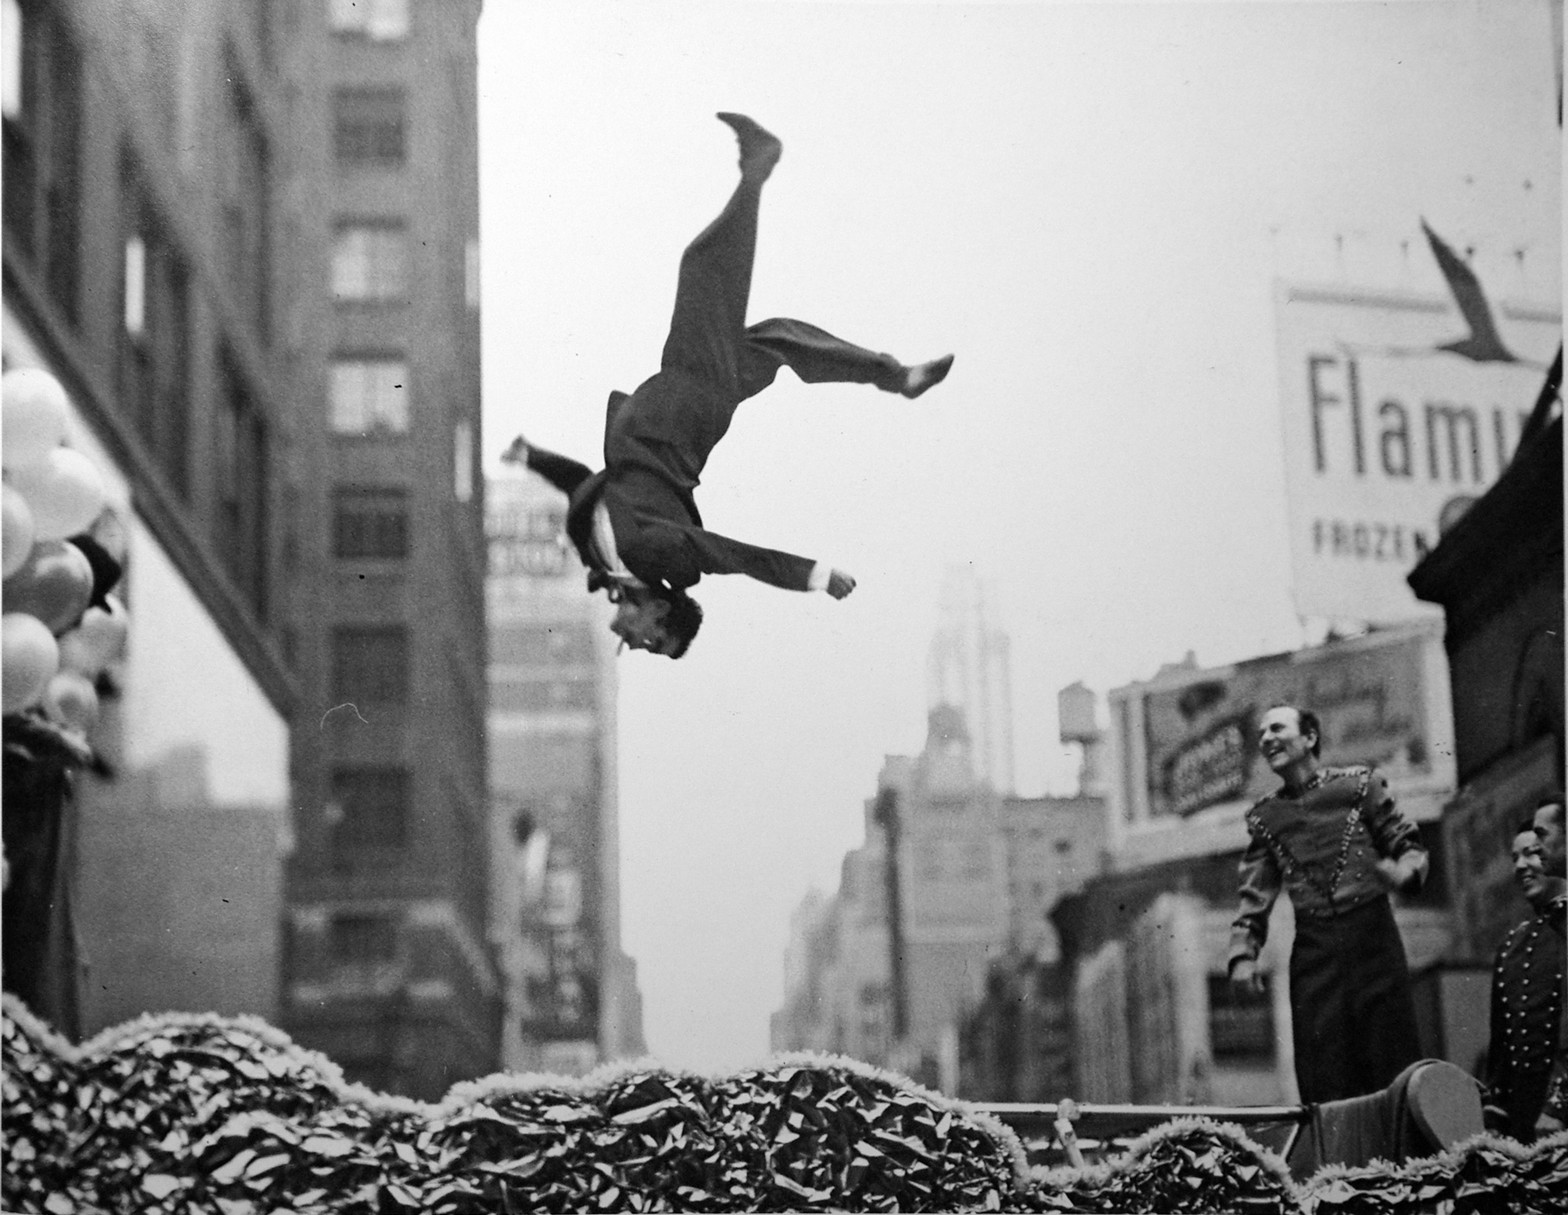 garry-winogrand.jpg